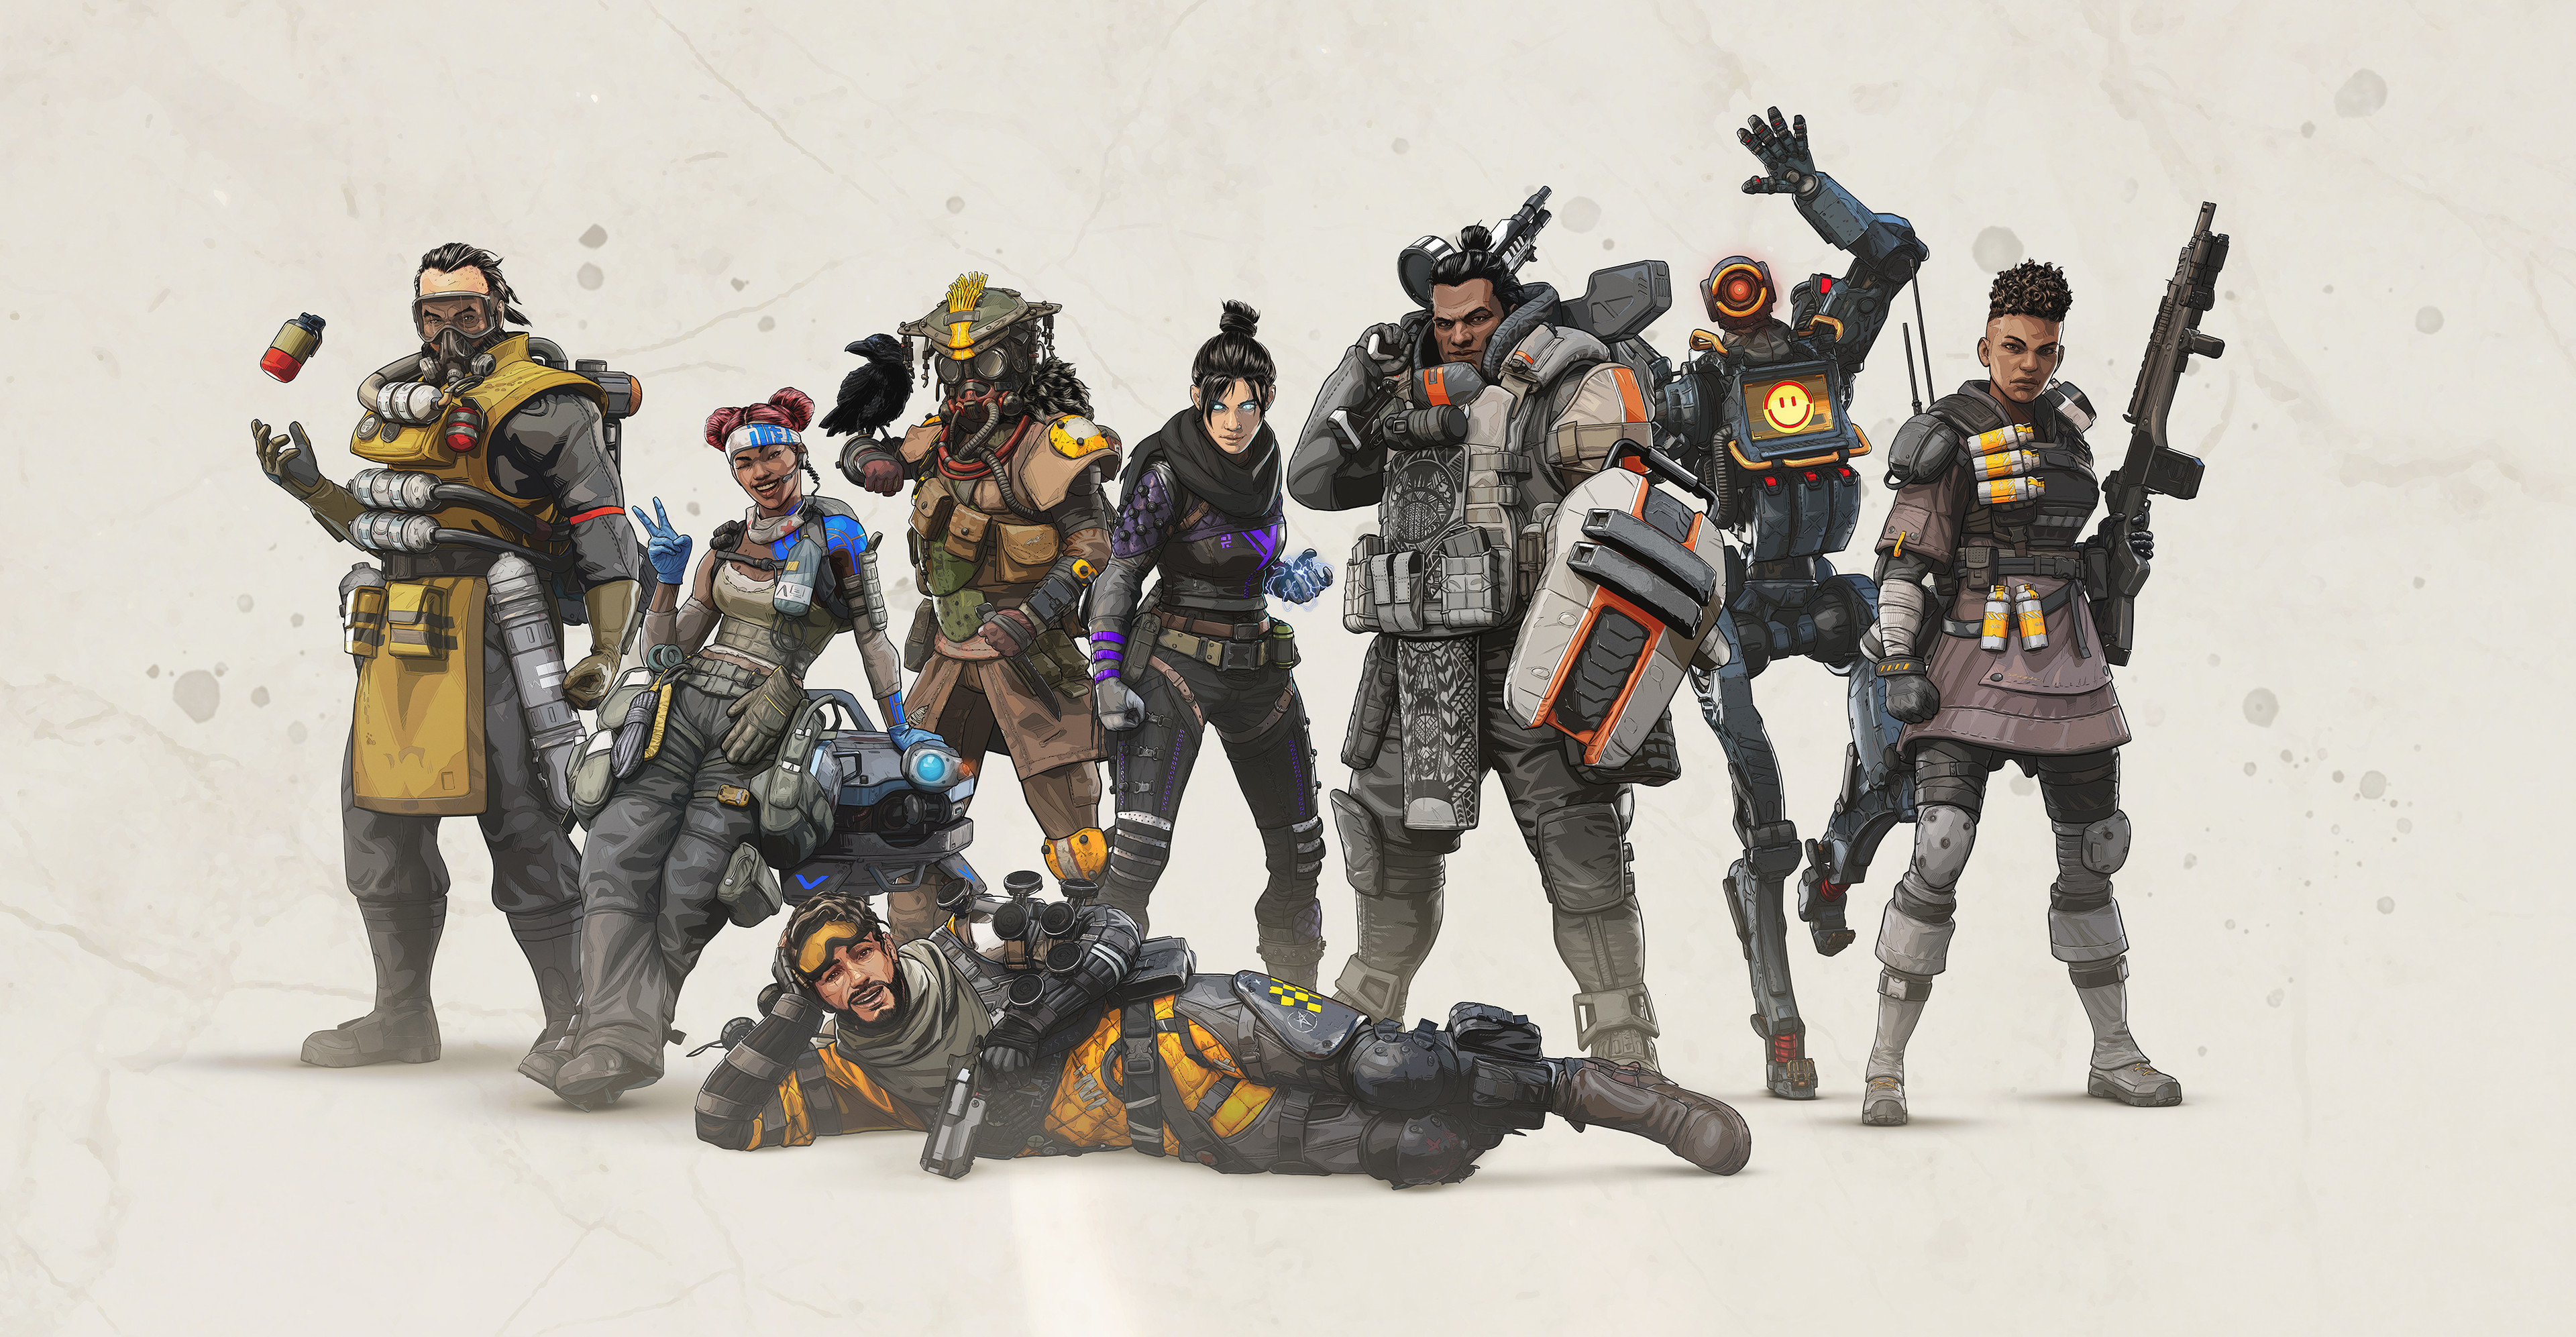 Full cast lineup at launch for Apex Legends.